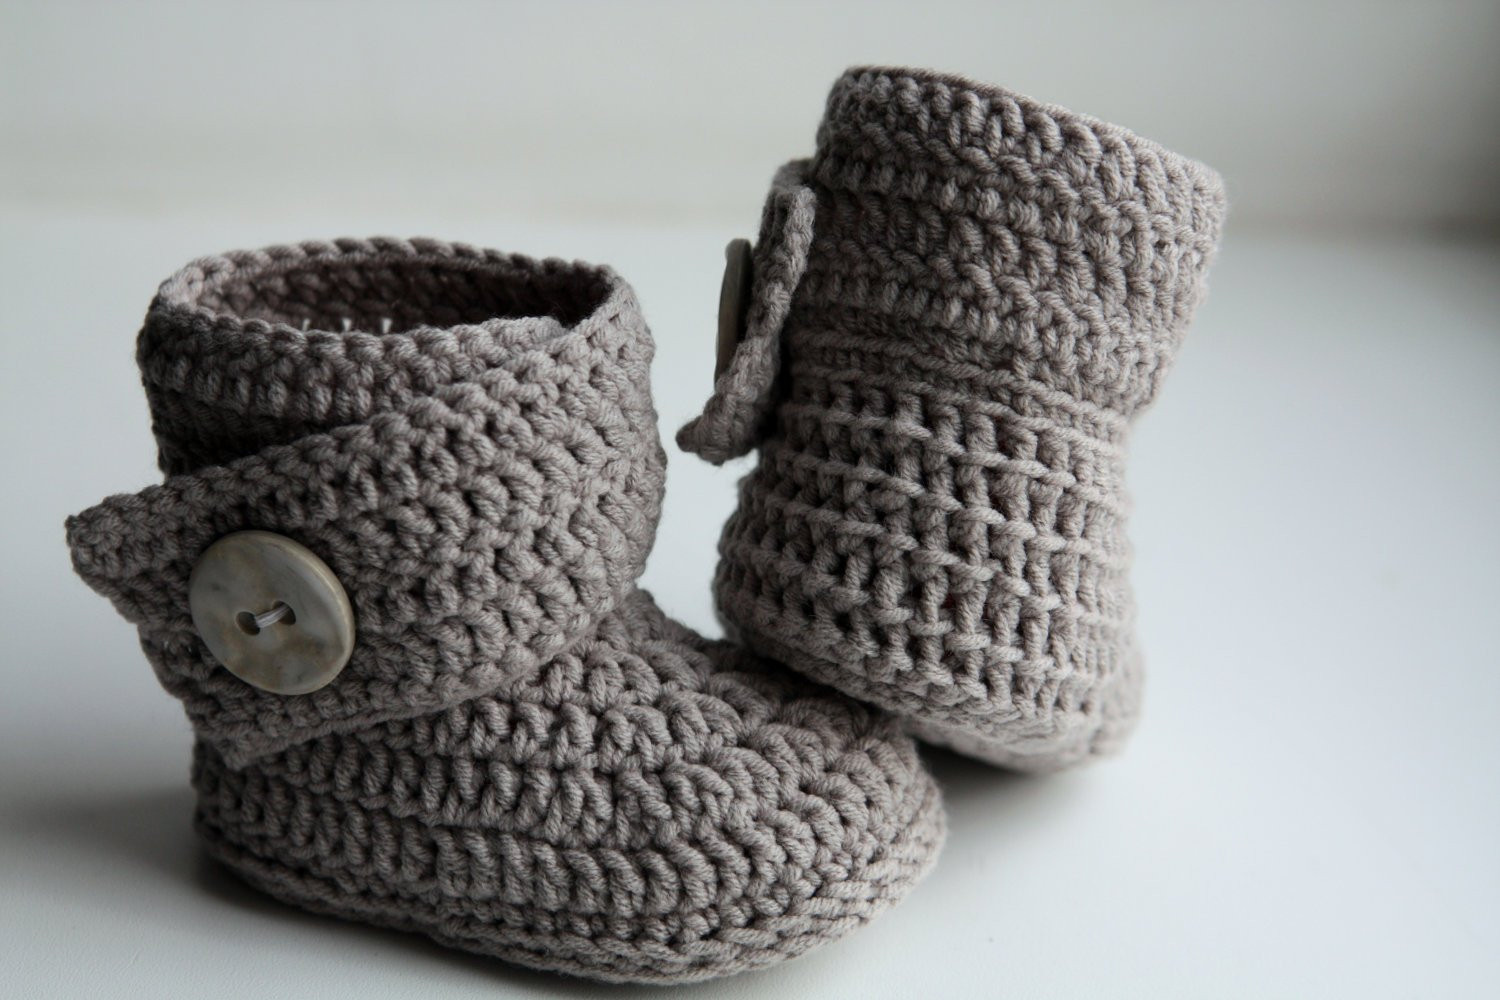 Best Of Crochet Ugg Boot Pattern Pdf This is A Pattern for Crocheted Crochet Ugg Of New 40 Ideas Crochet Ugg